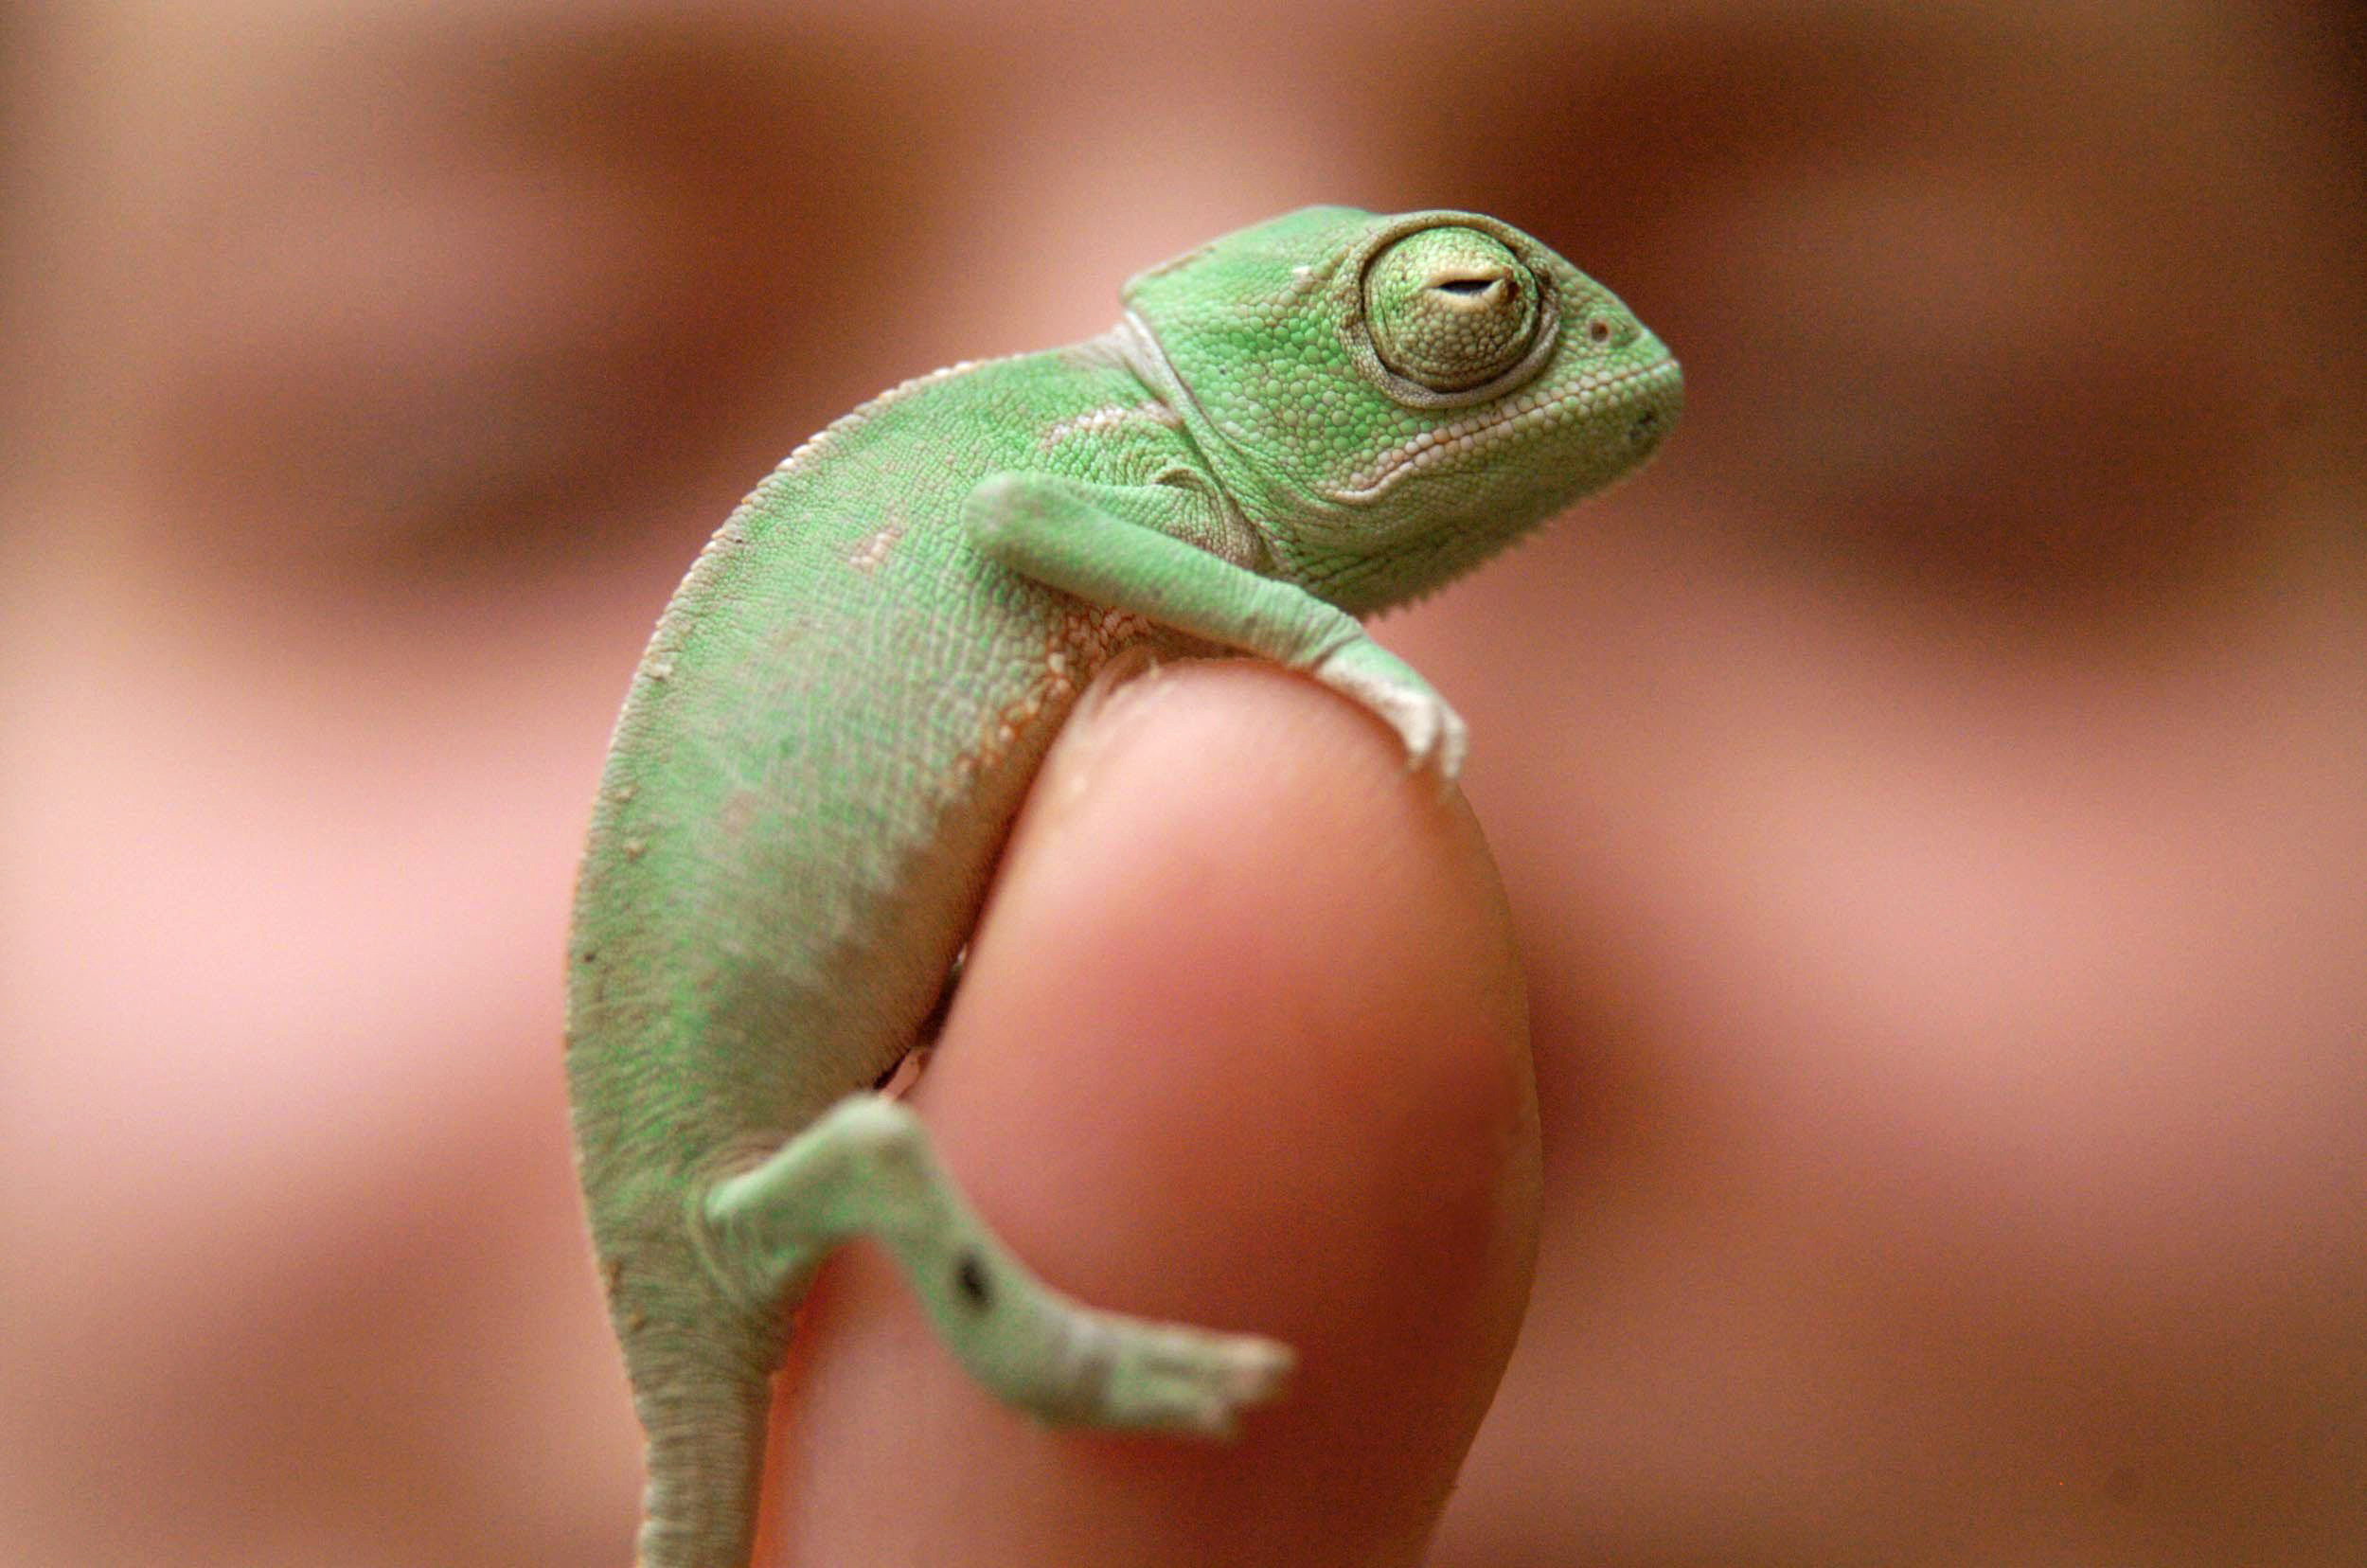 How Chameleons Change Color Revealed By Scientists Aol News